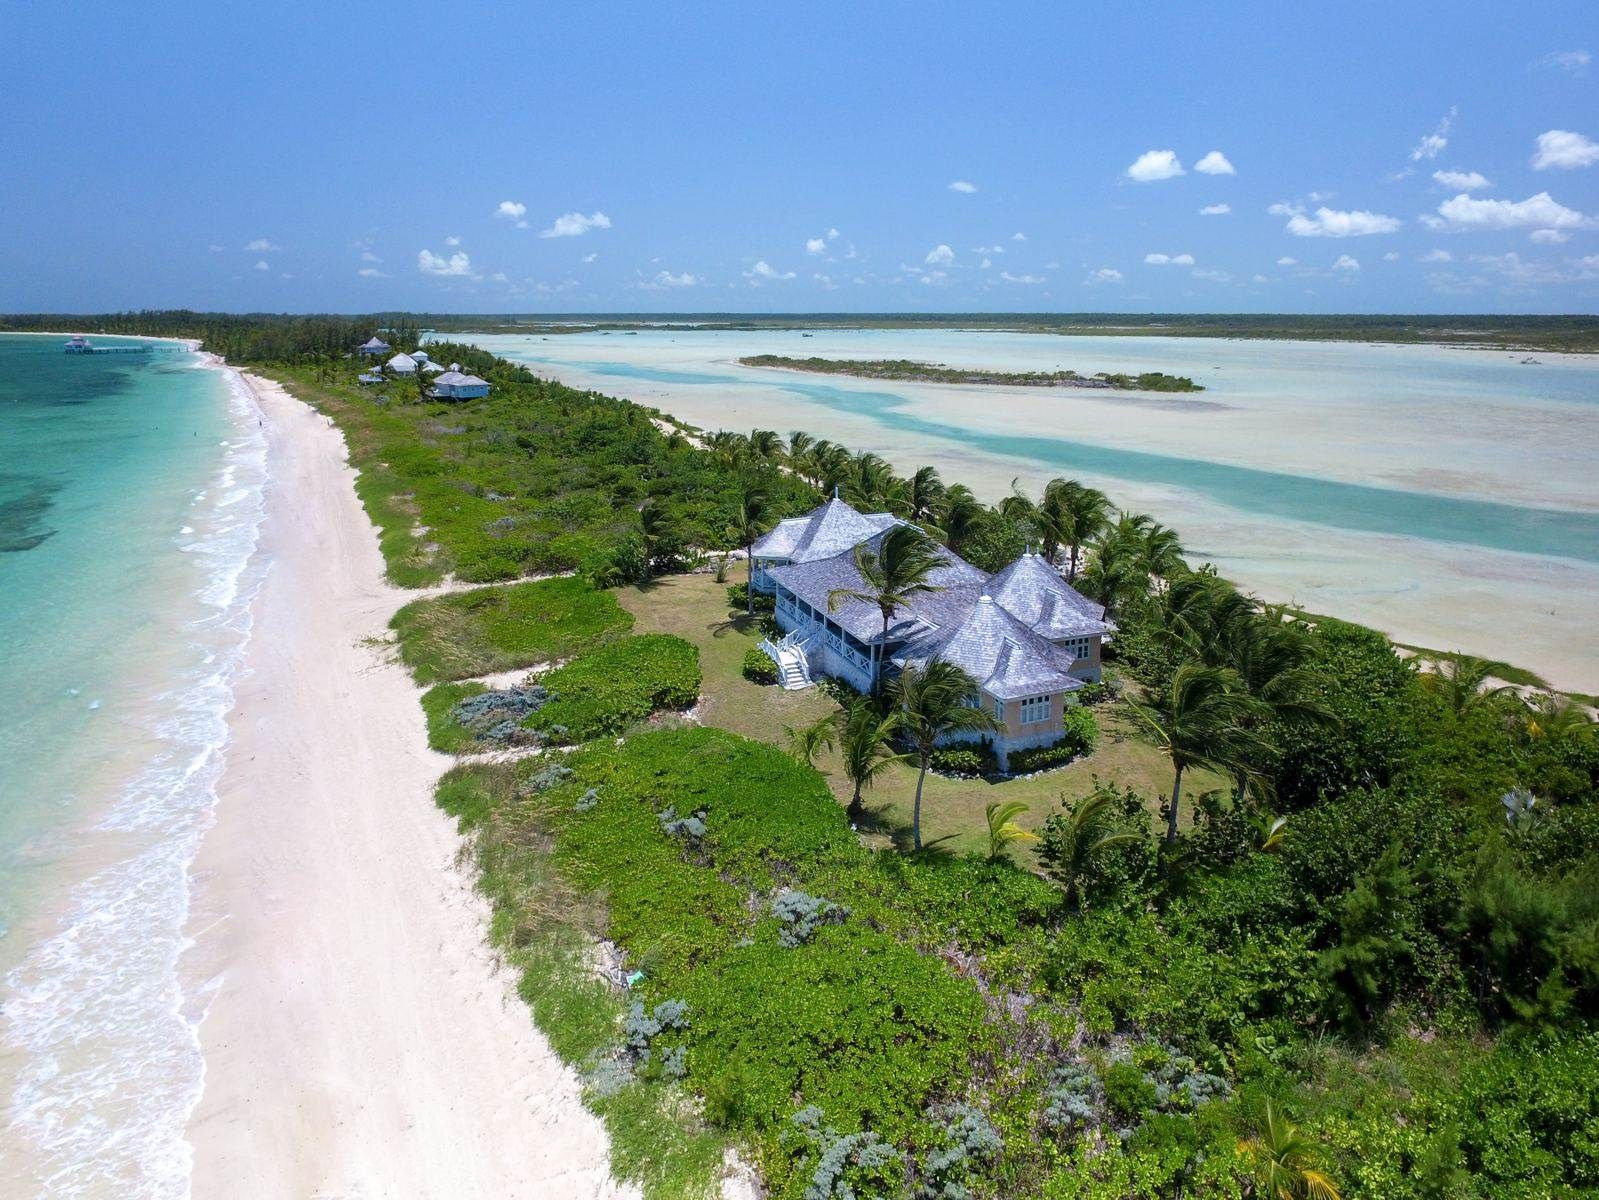 Single Family Home For Sale At Coops Nest Kamalame Cay Andros - Bahamas in december